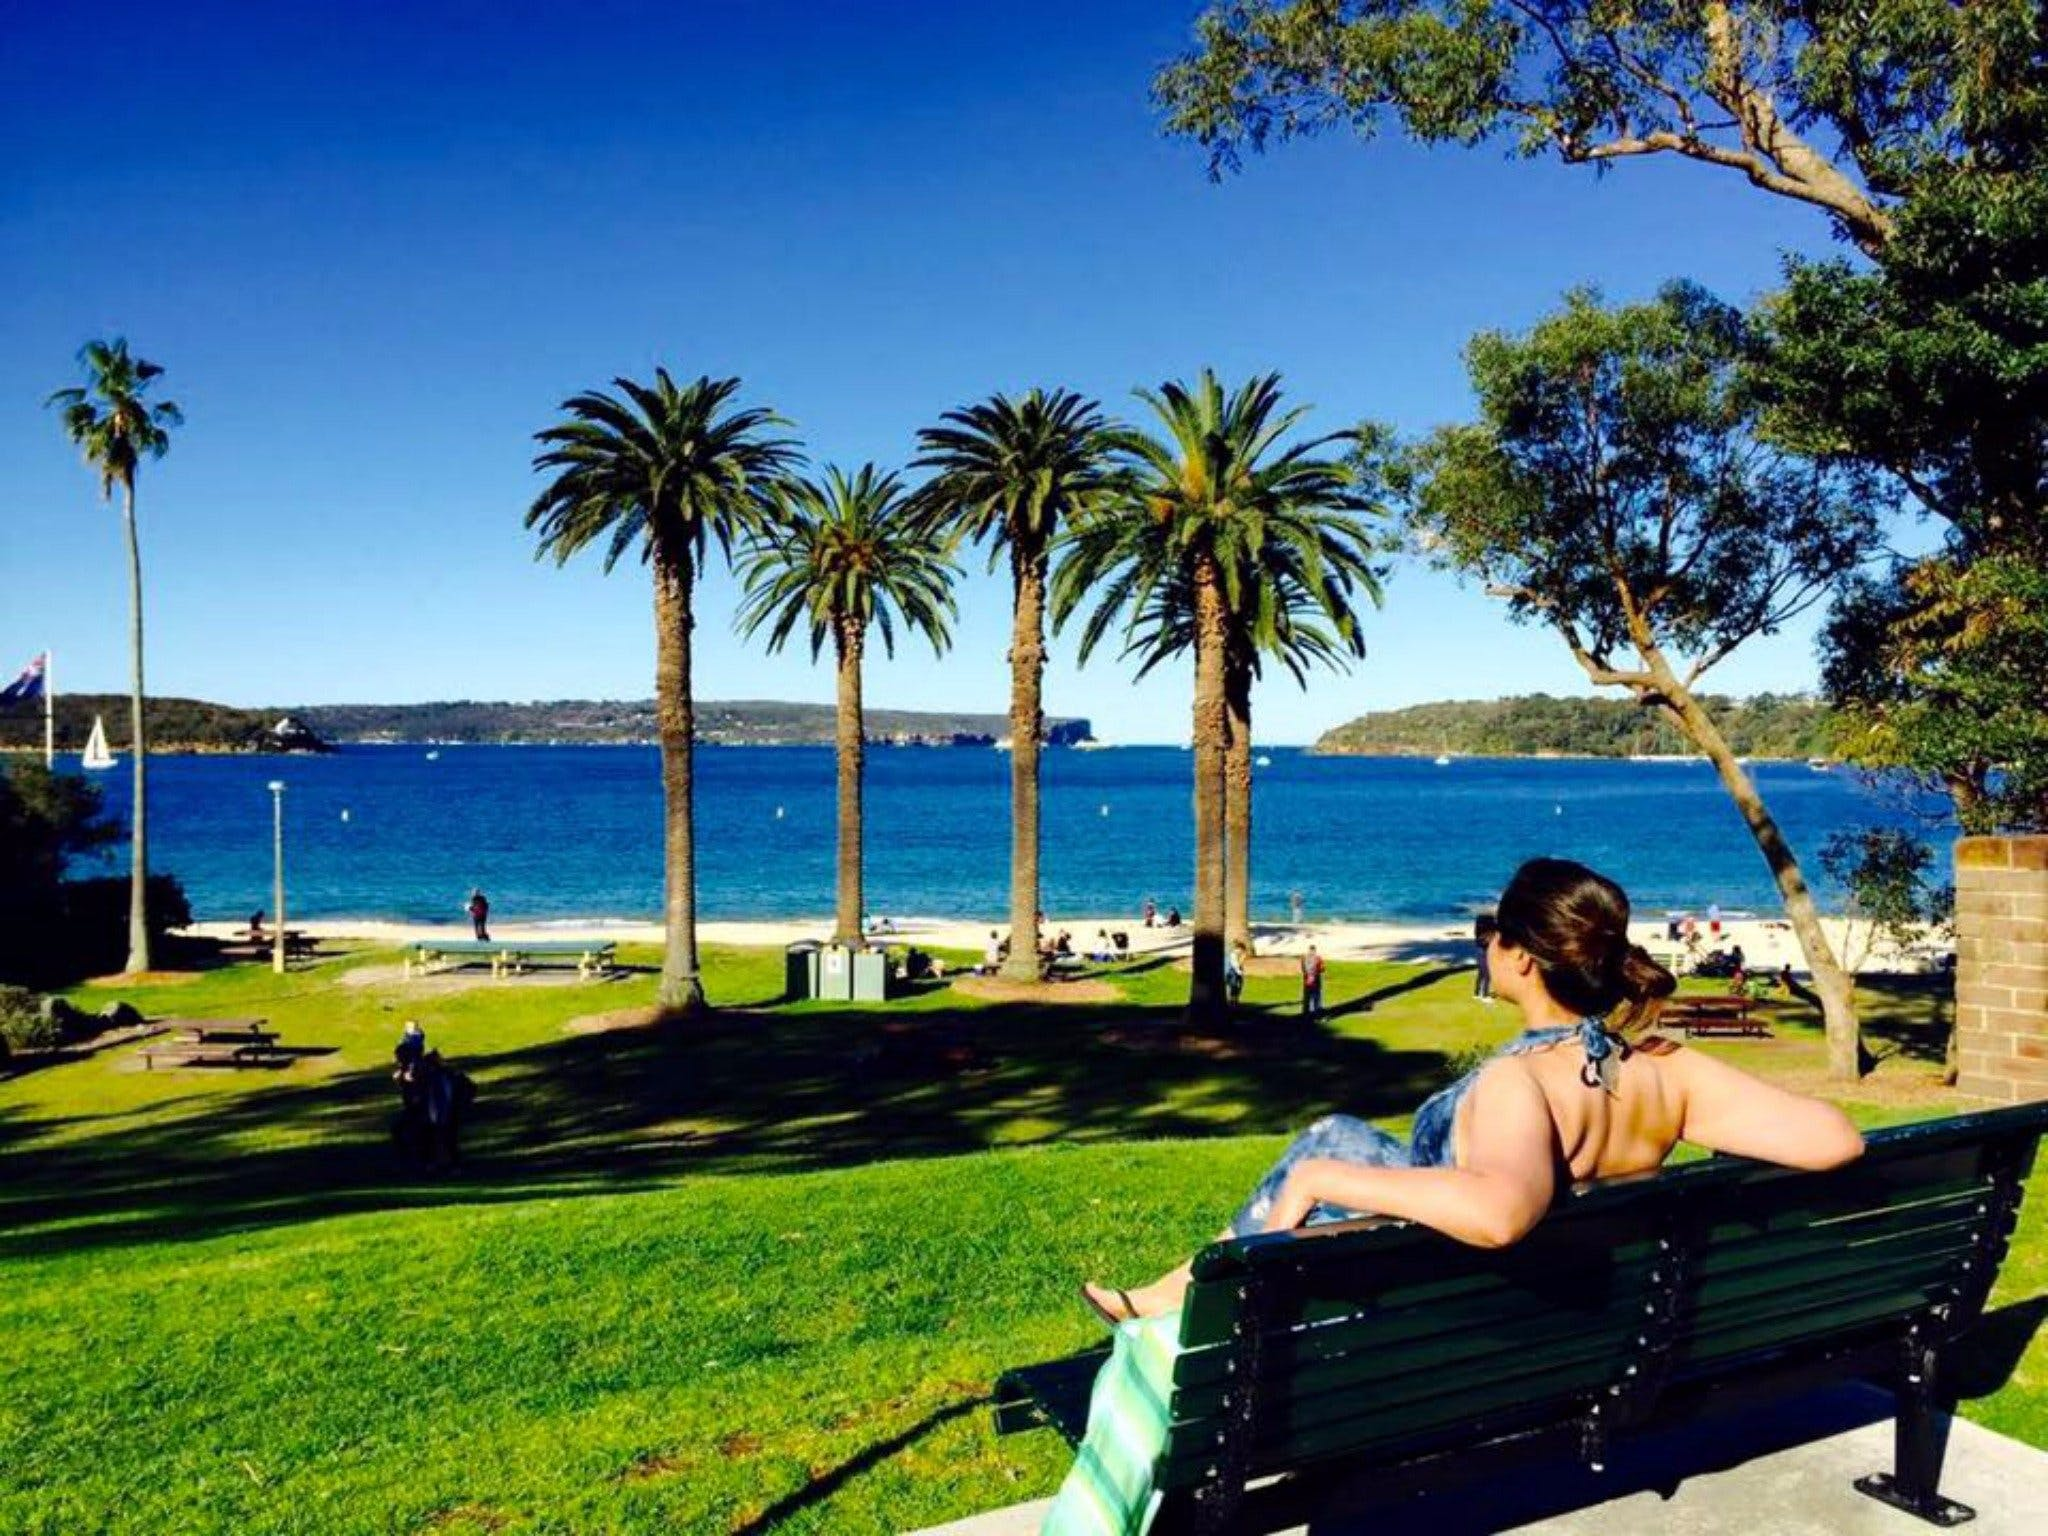 Balmoral Beach - Attractions